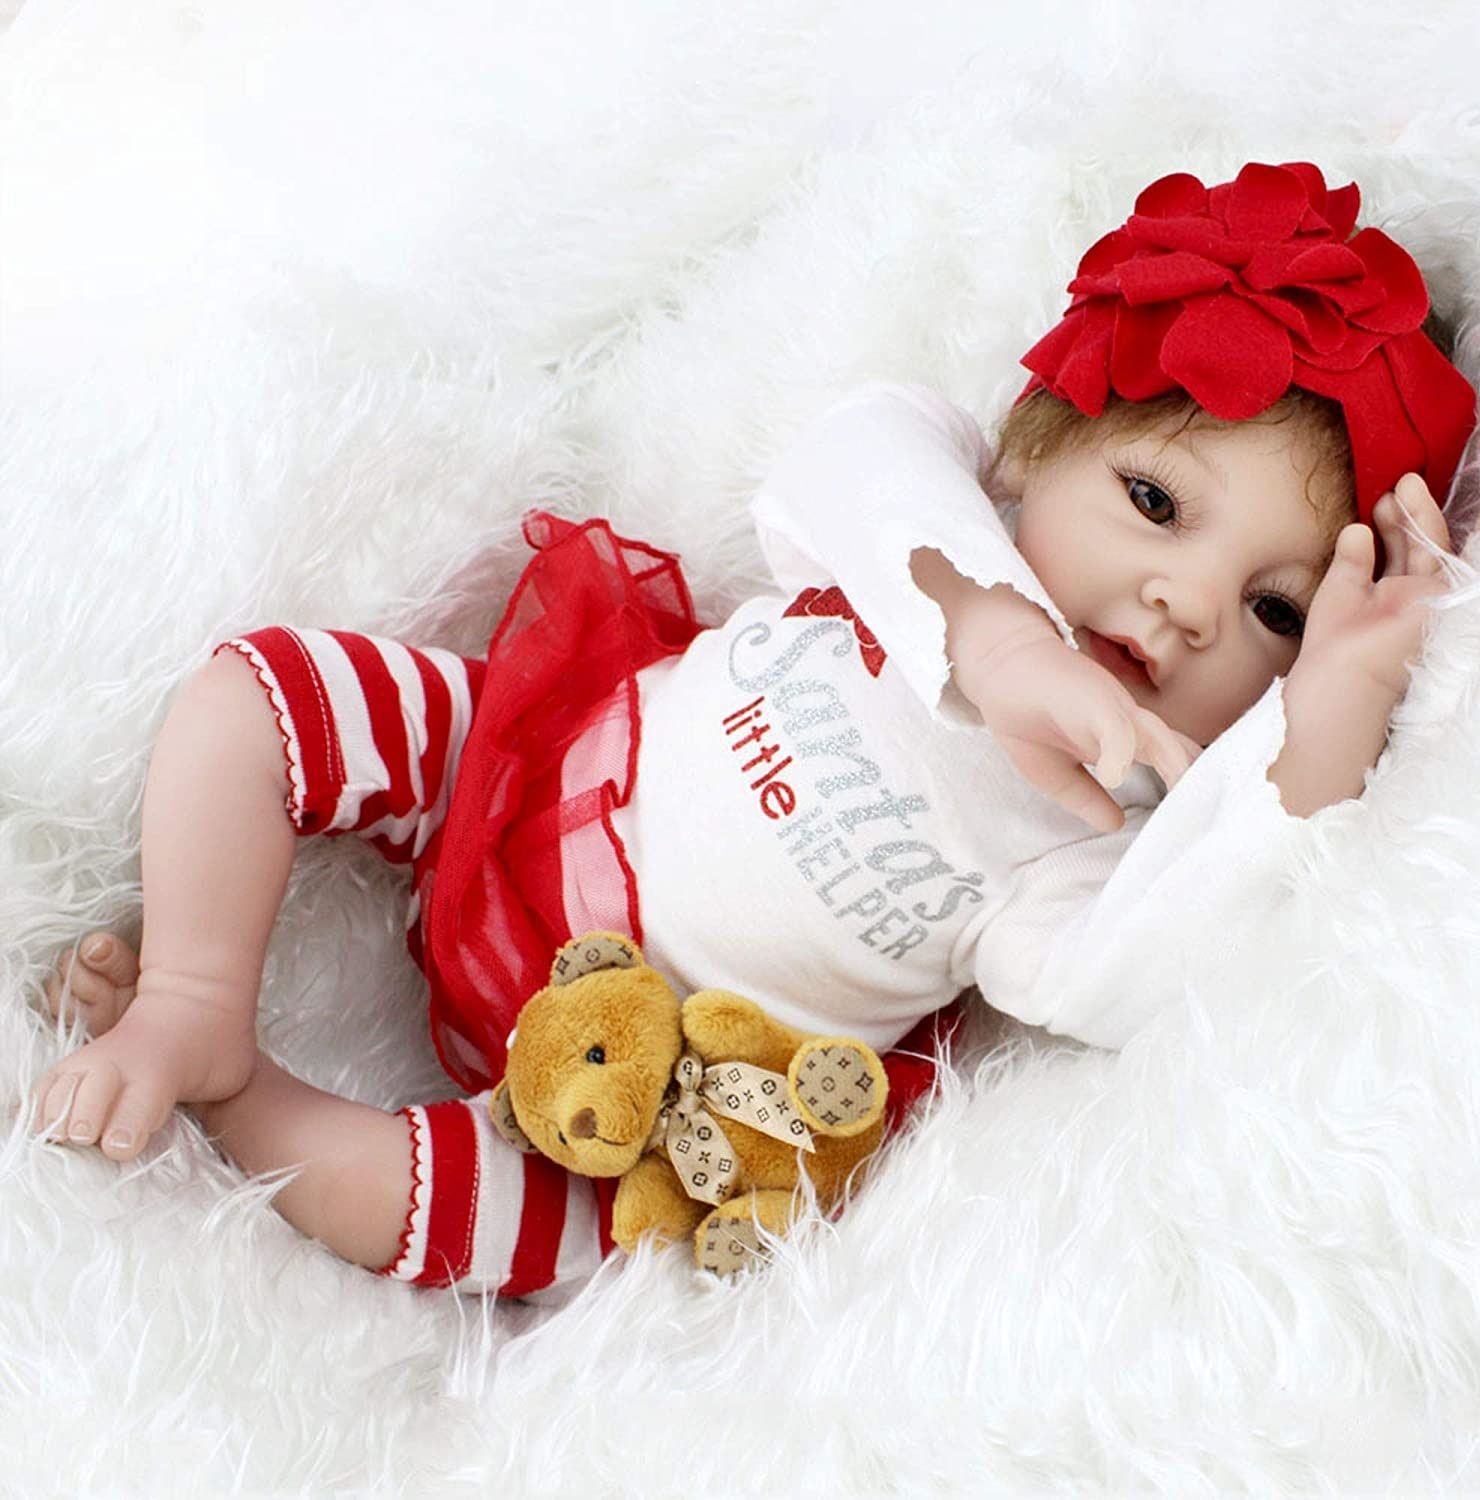 Shop Charex Realistic Reborn Baby Dolls 22in At Artsy Sister In 2020 Baby Girl Toys Real Baby Dolls Reborn Baby Dolls